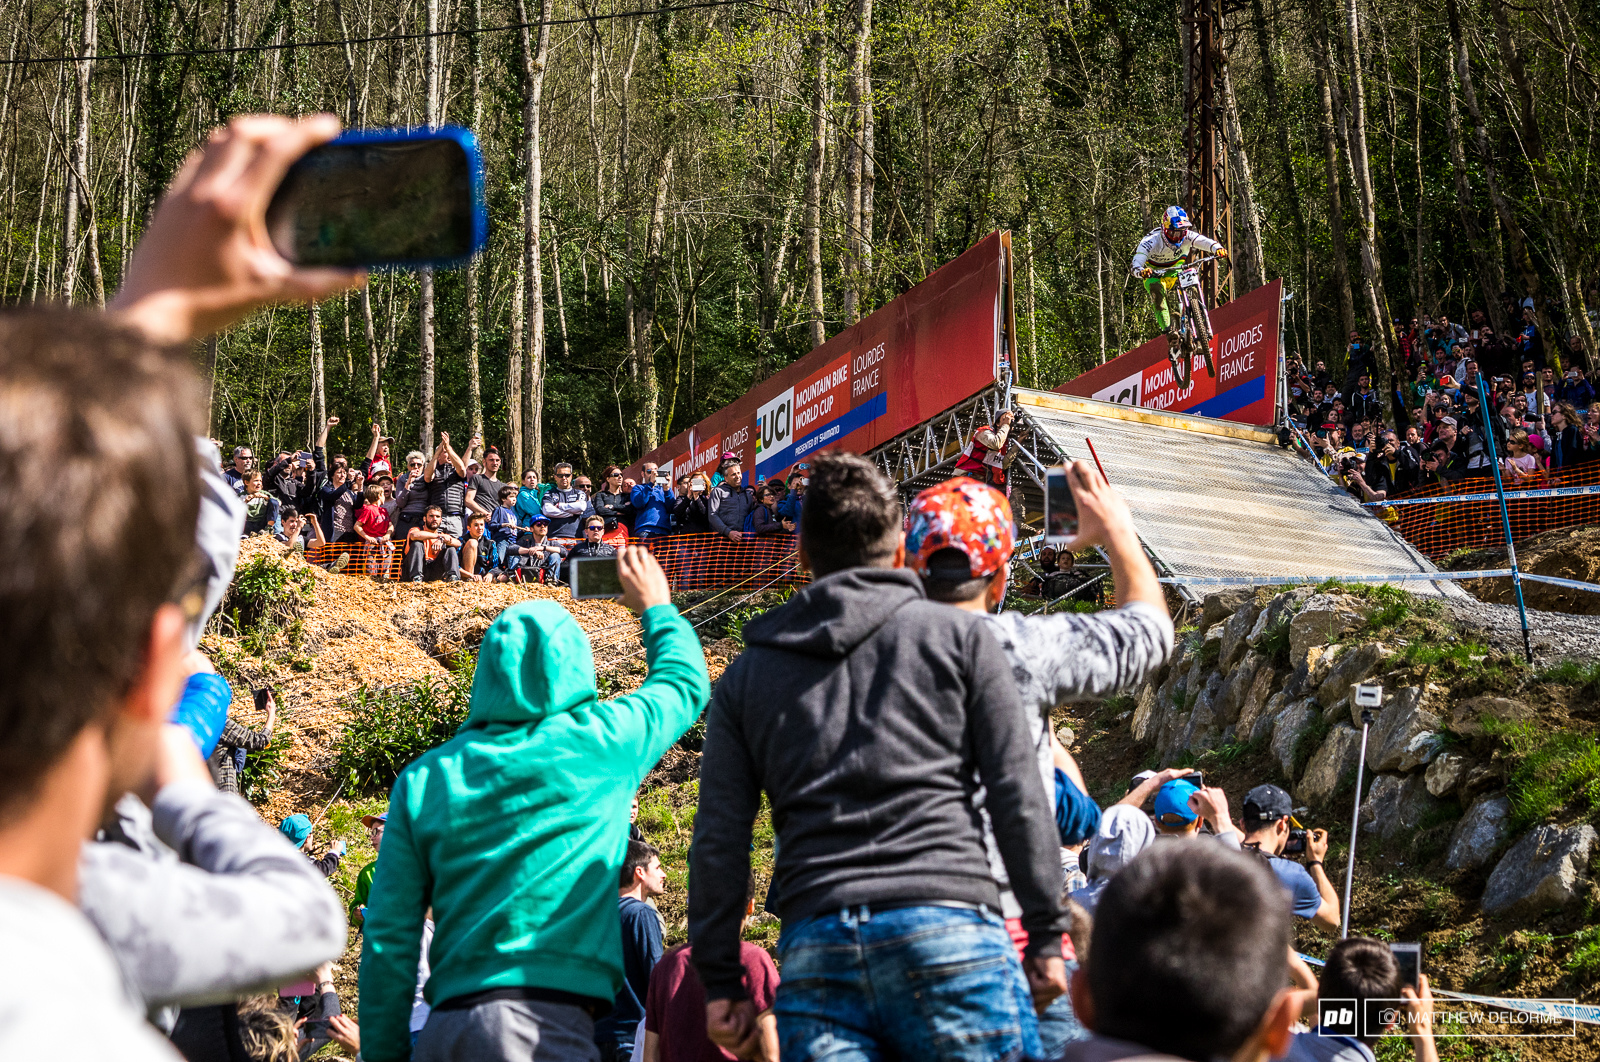 All phones and eyes were trained on Loic Bruni as he came across the line to a hero s welcome. In the end it just wasn t his day.